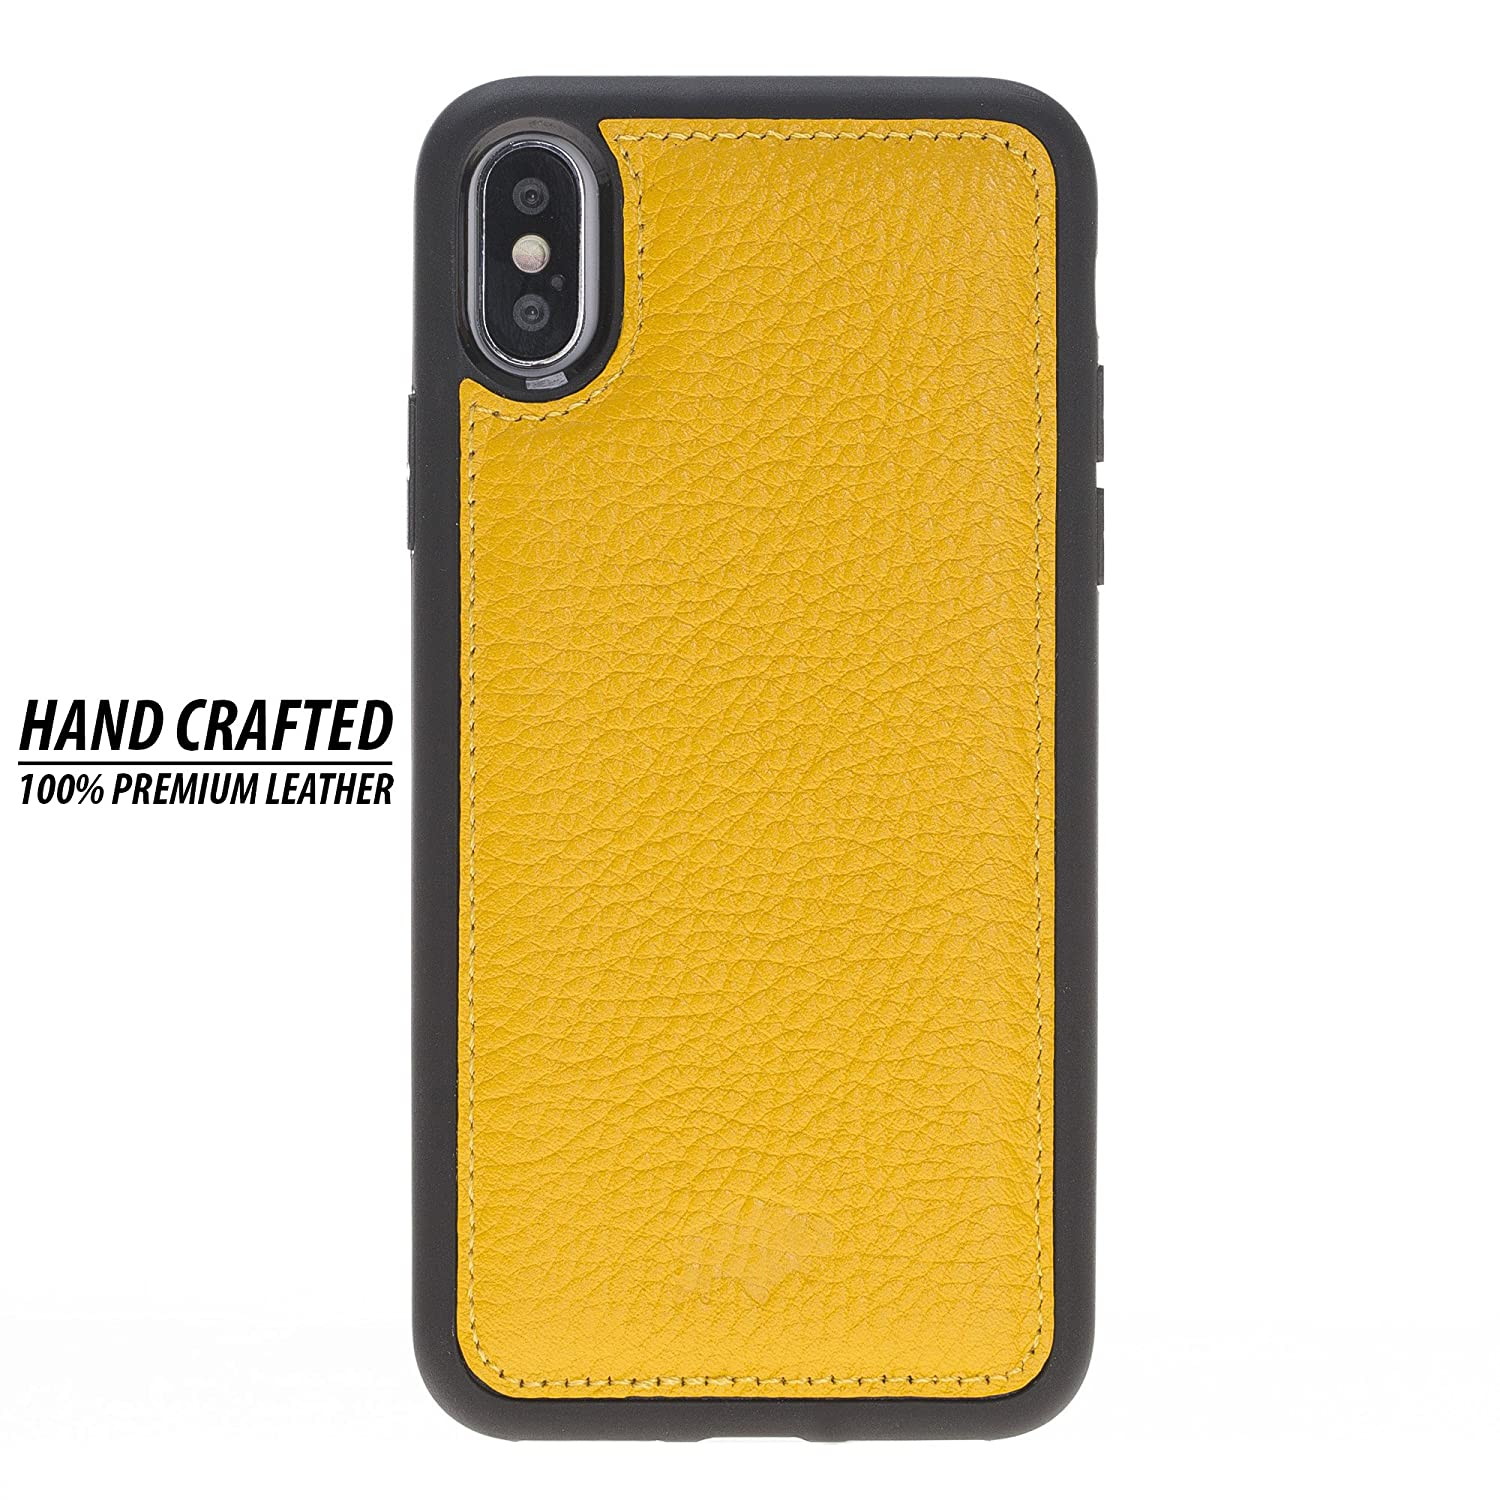 iPhone X/XS Leather 360 Degree Snap-on Case, Slim & Lightweight Flex Back  Cover with Drop & Screen Protection, Hand-Wrapped in Premium Turkish  Leather